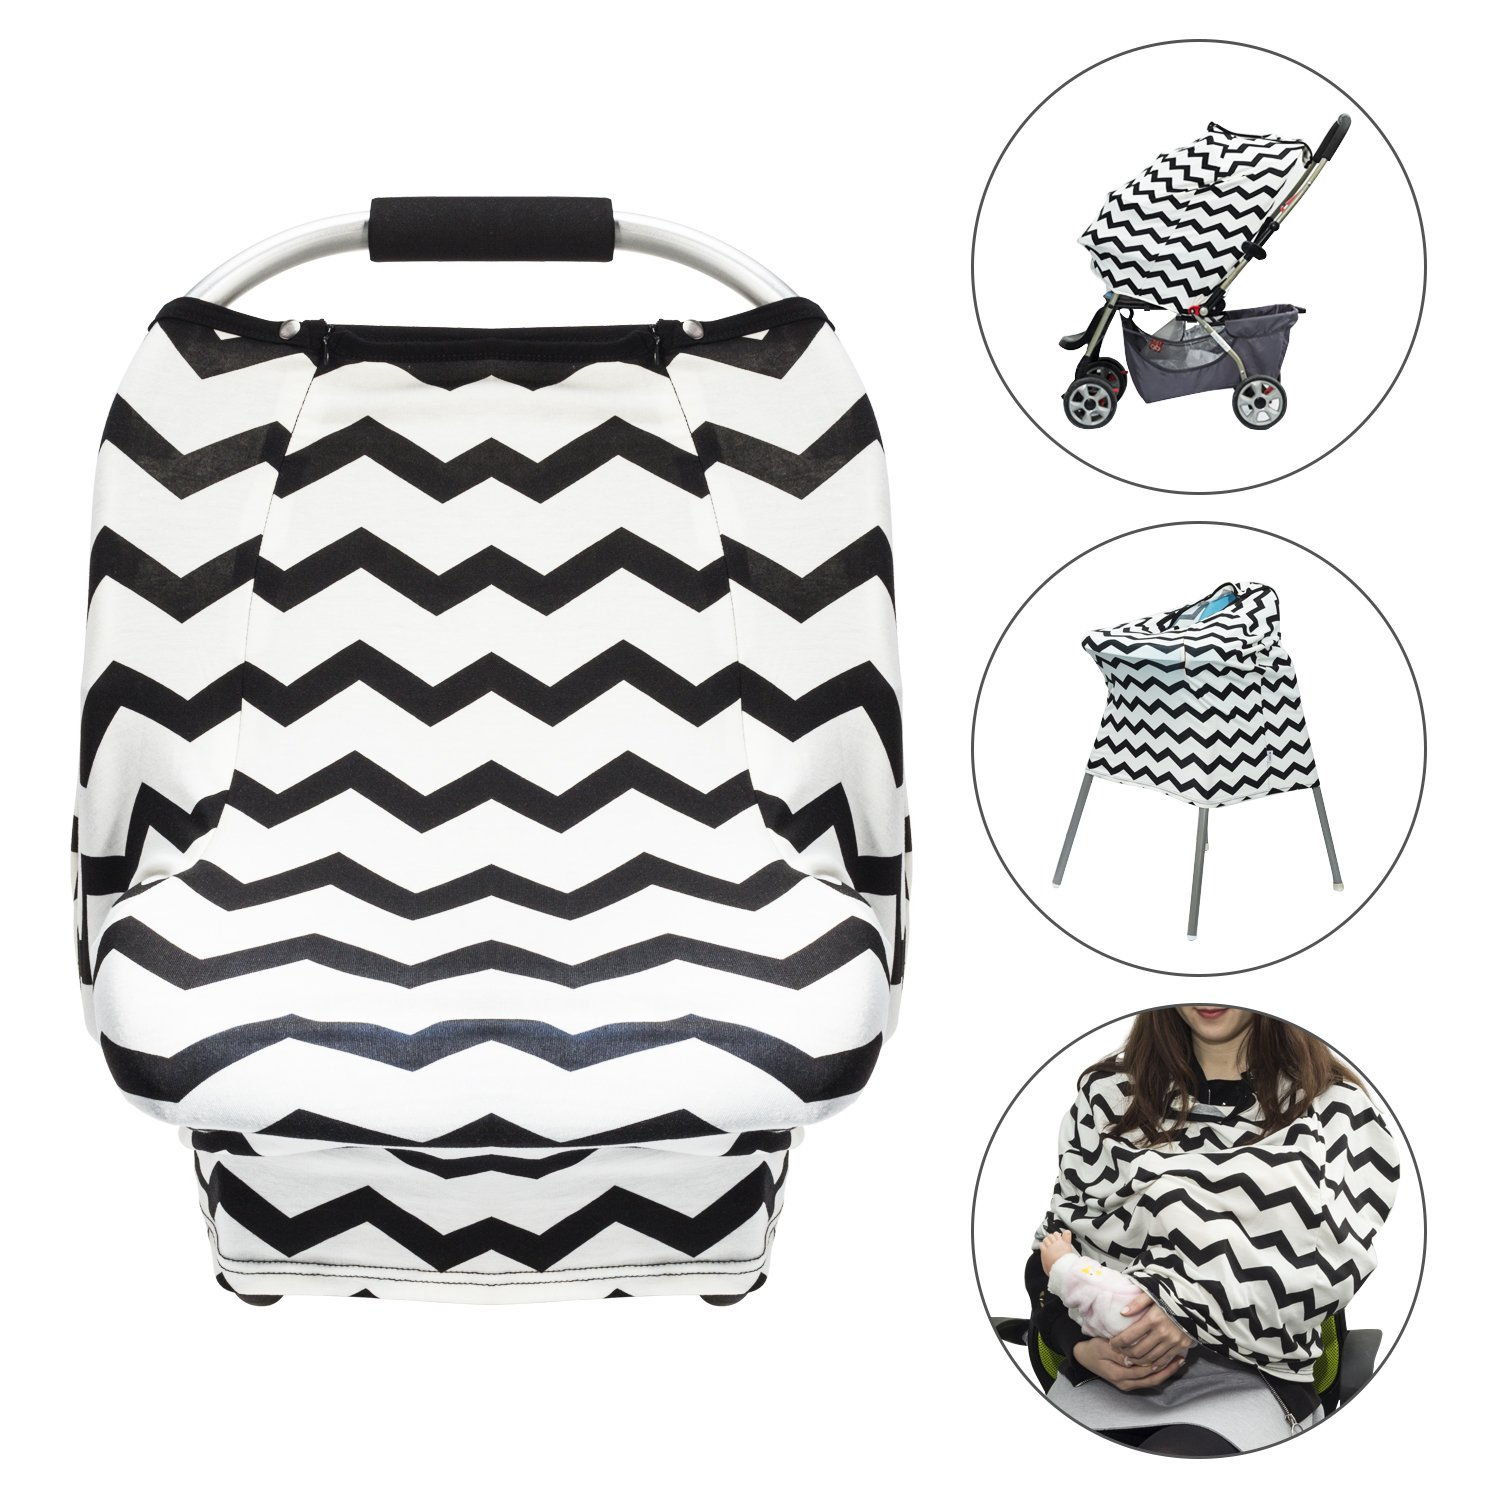 Baby Car Seat Cover - Uiter Infant Car Canopy Nursing Cover for Boys Girls, Snug Warm Breathable Windproof, Adjustable Peep Window, Insect free, Universal Fit (Stripe) Southern Harbour